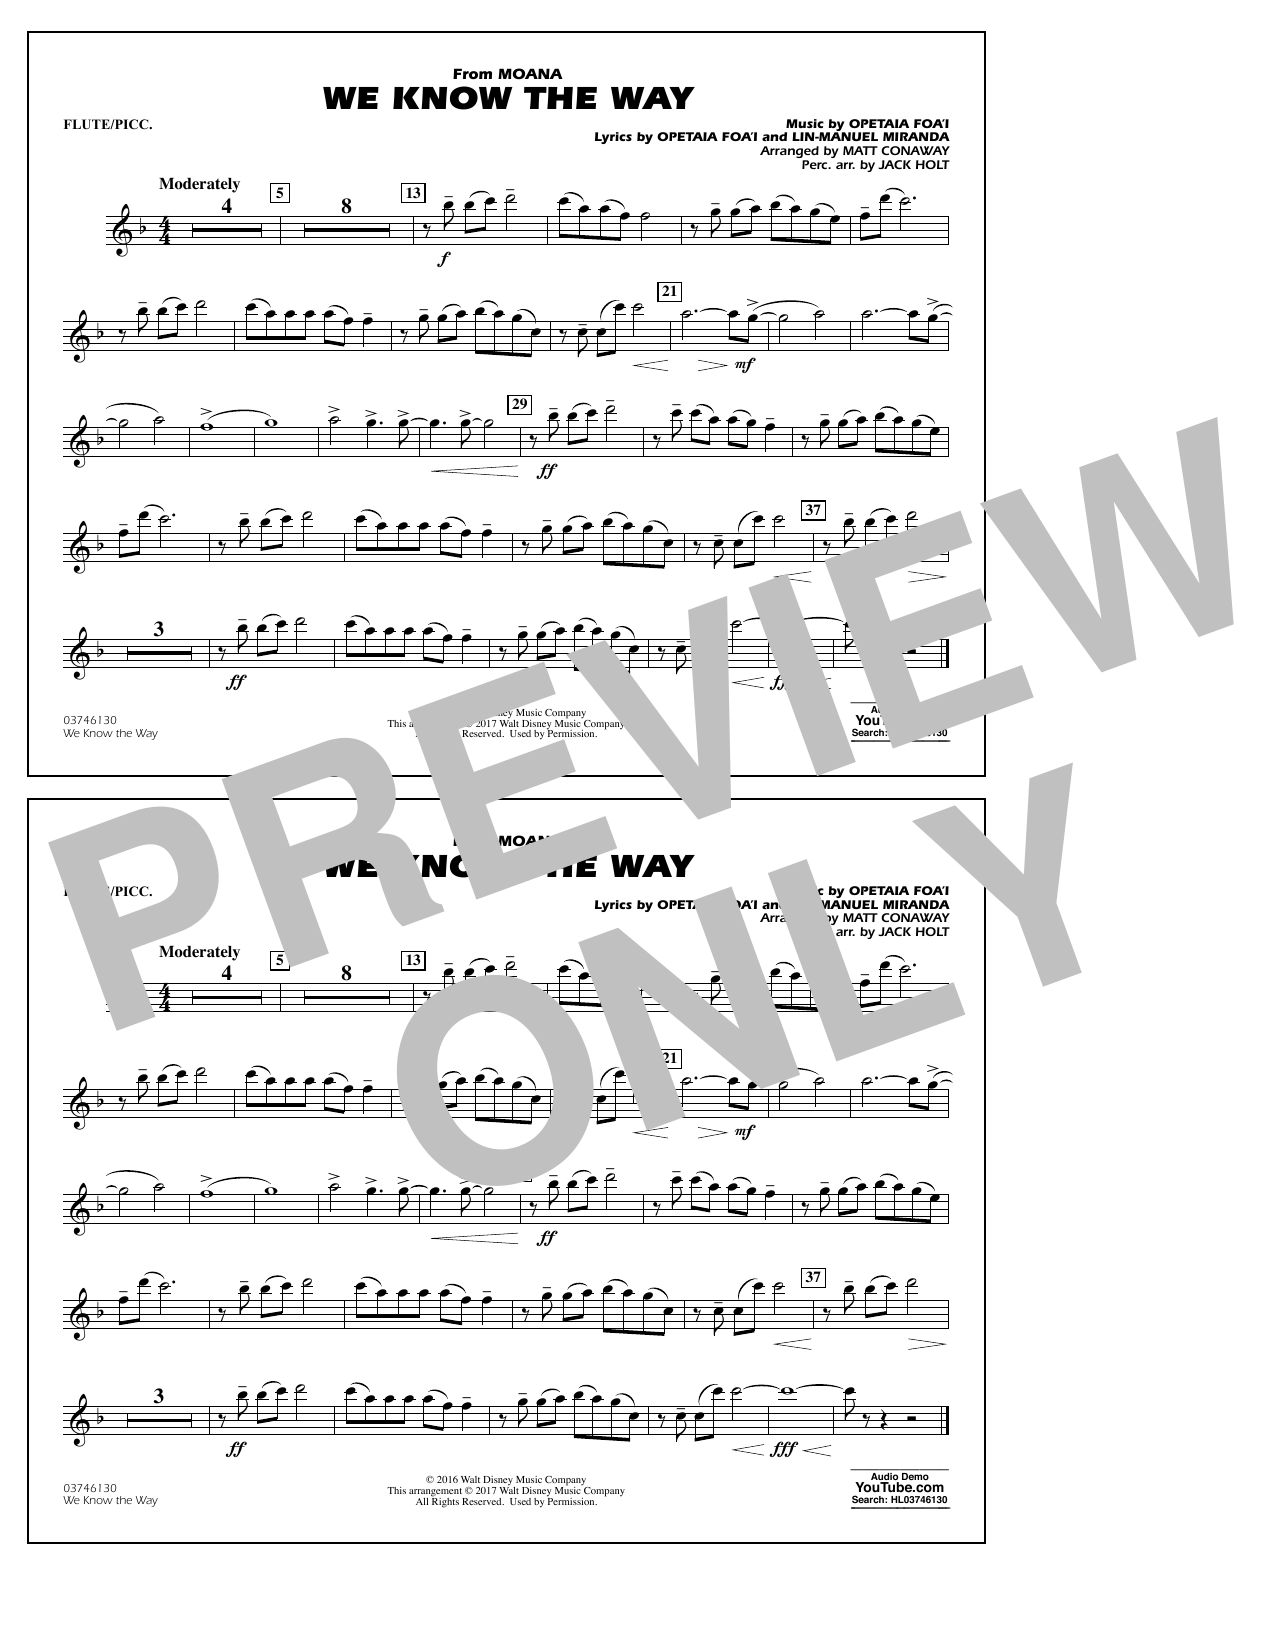 We Know the Way (from Moana) - Flute/Piccolo Partituras Digitales